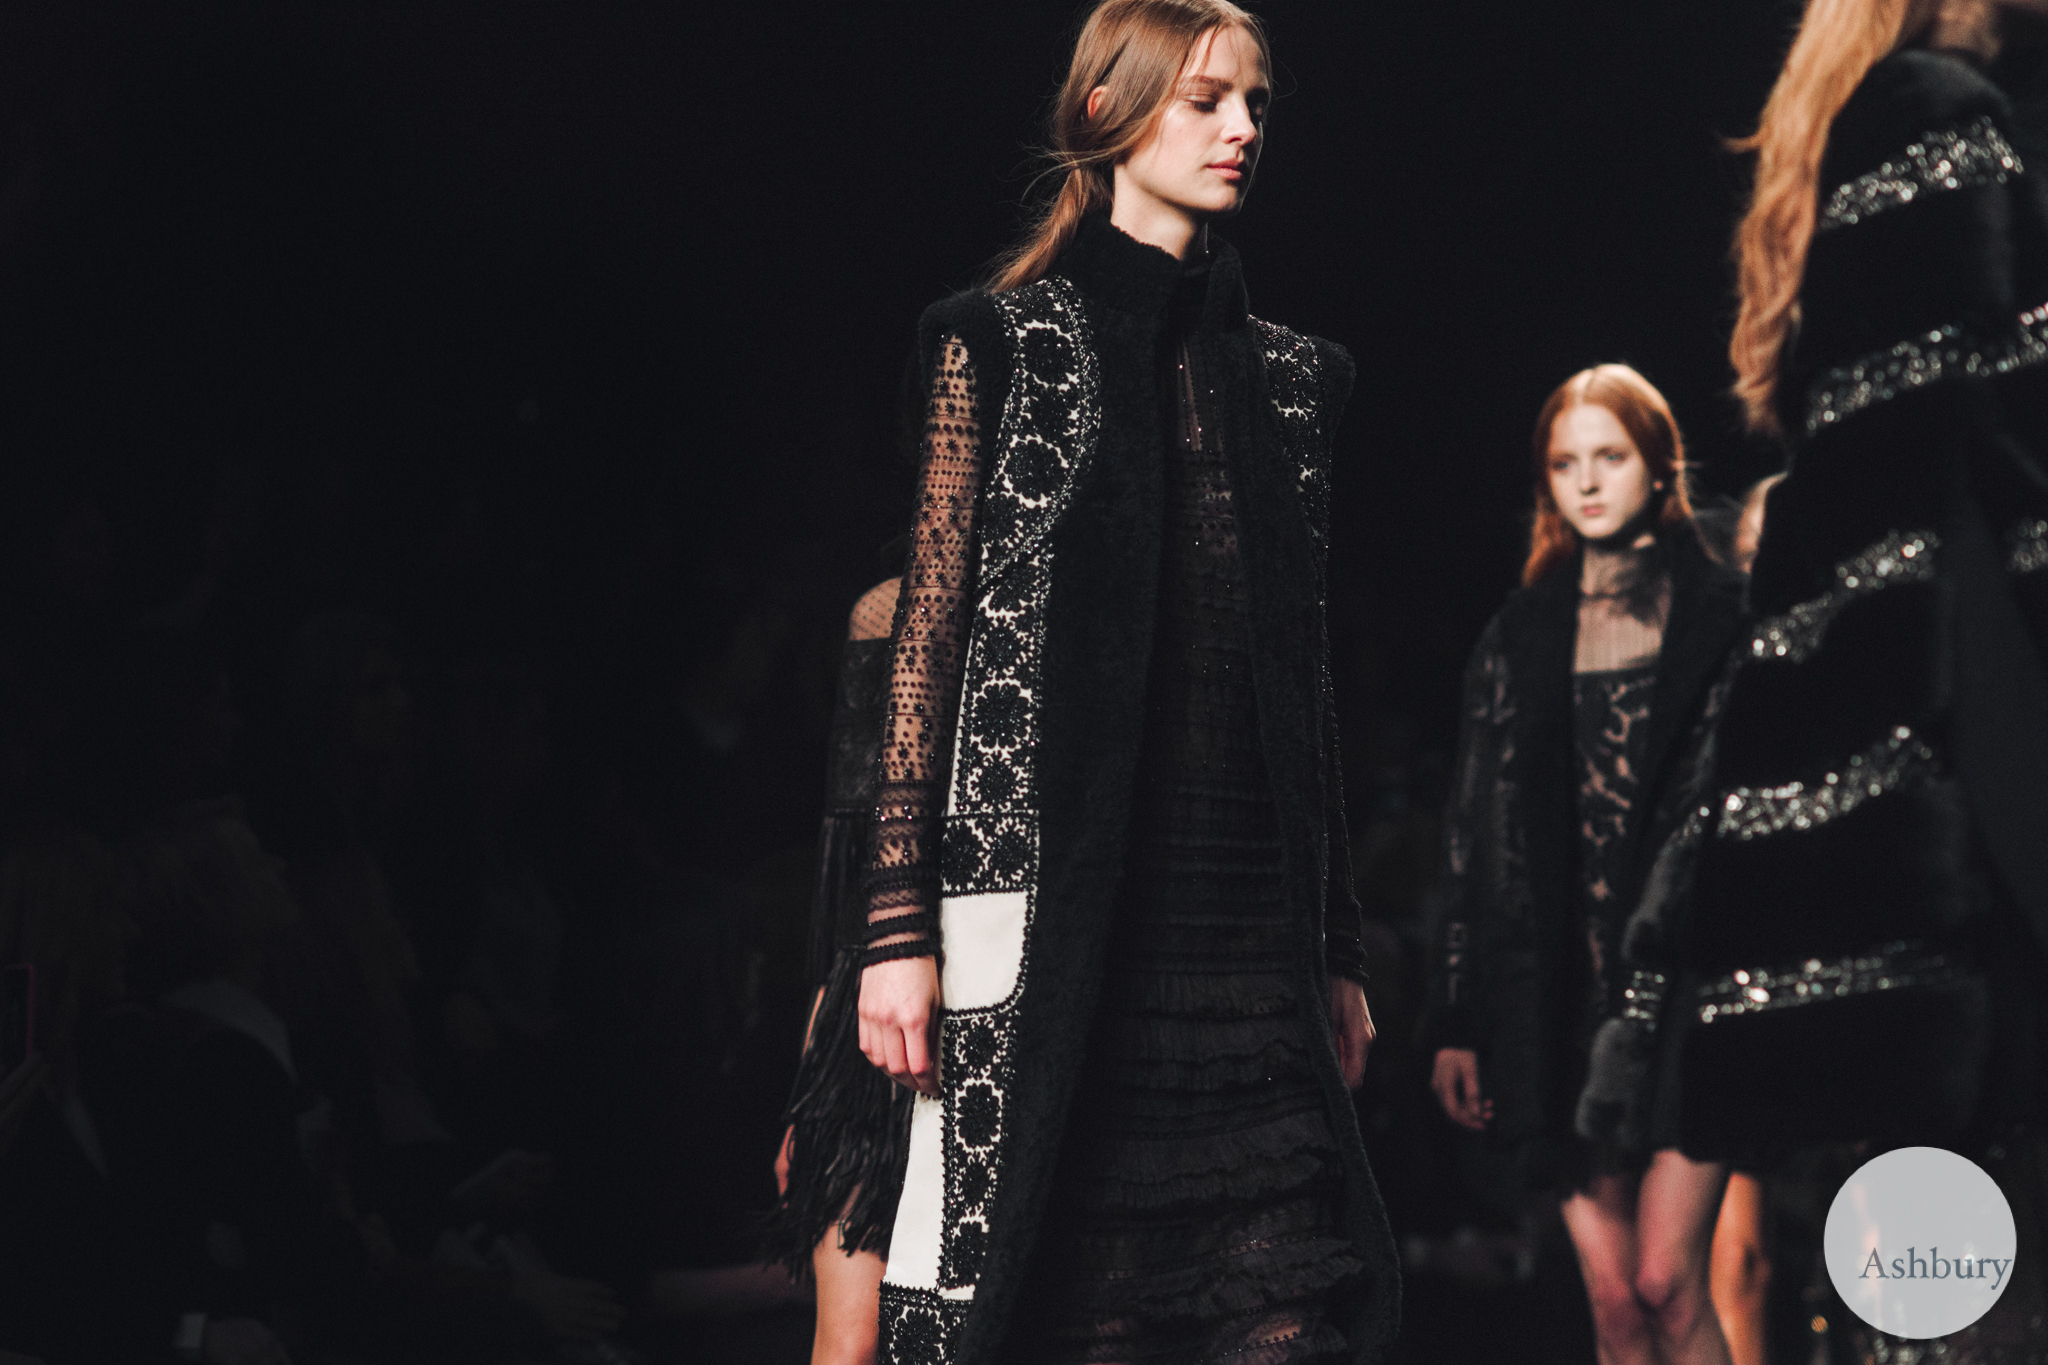 valentino fall winter 2015 - ine neefs 2